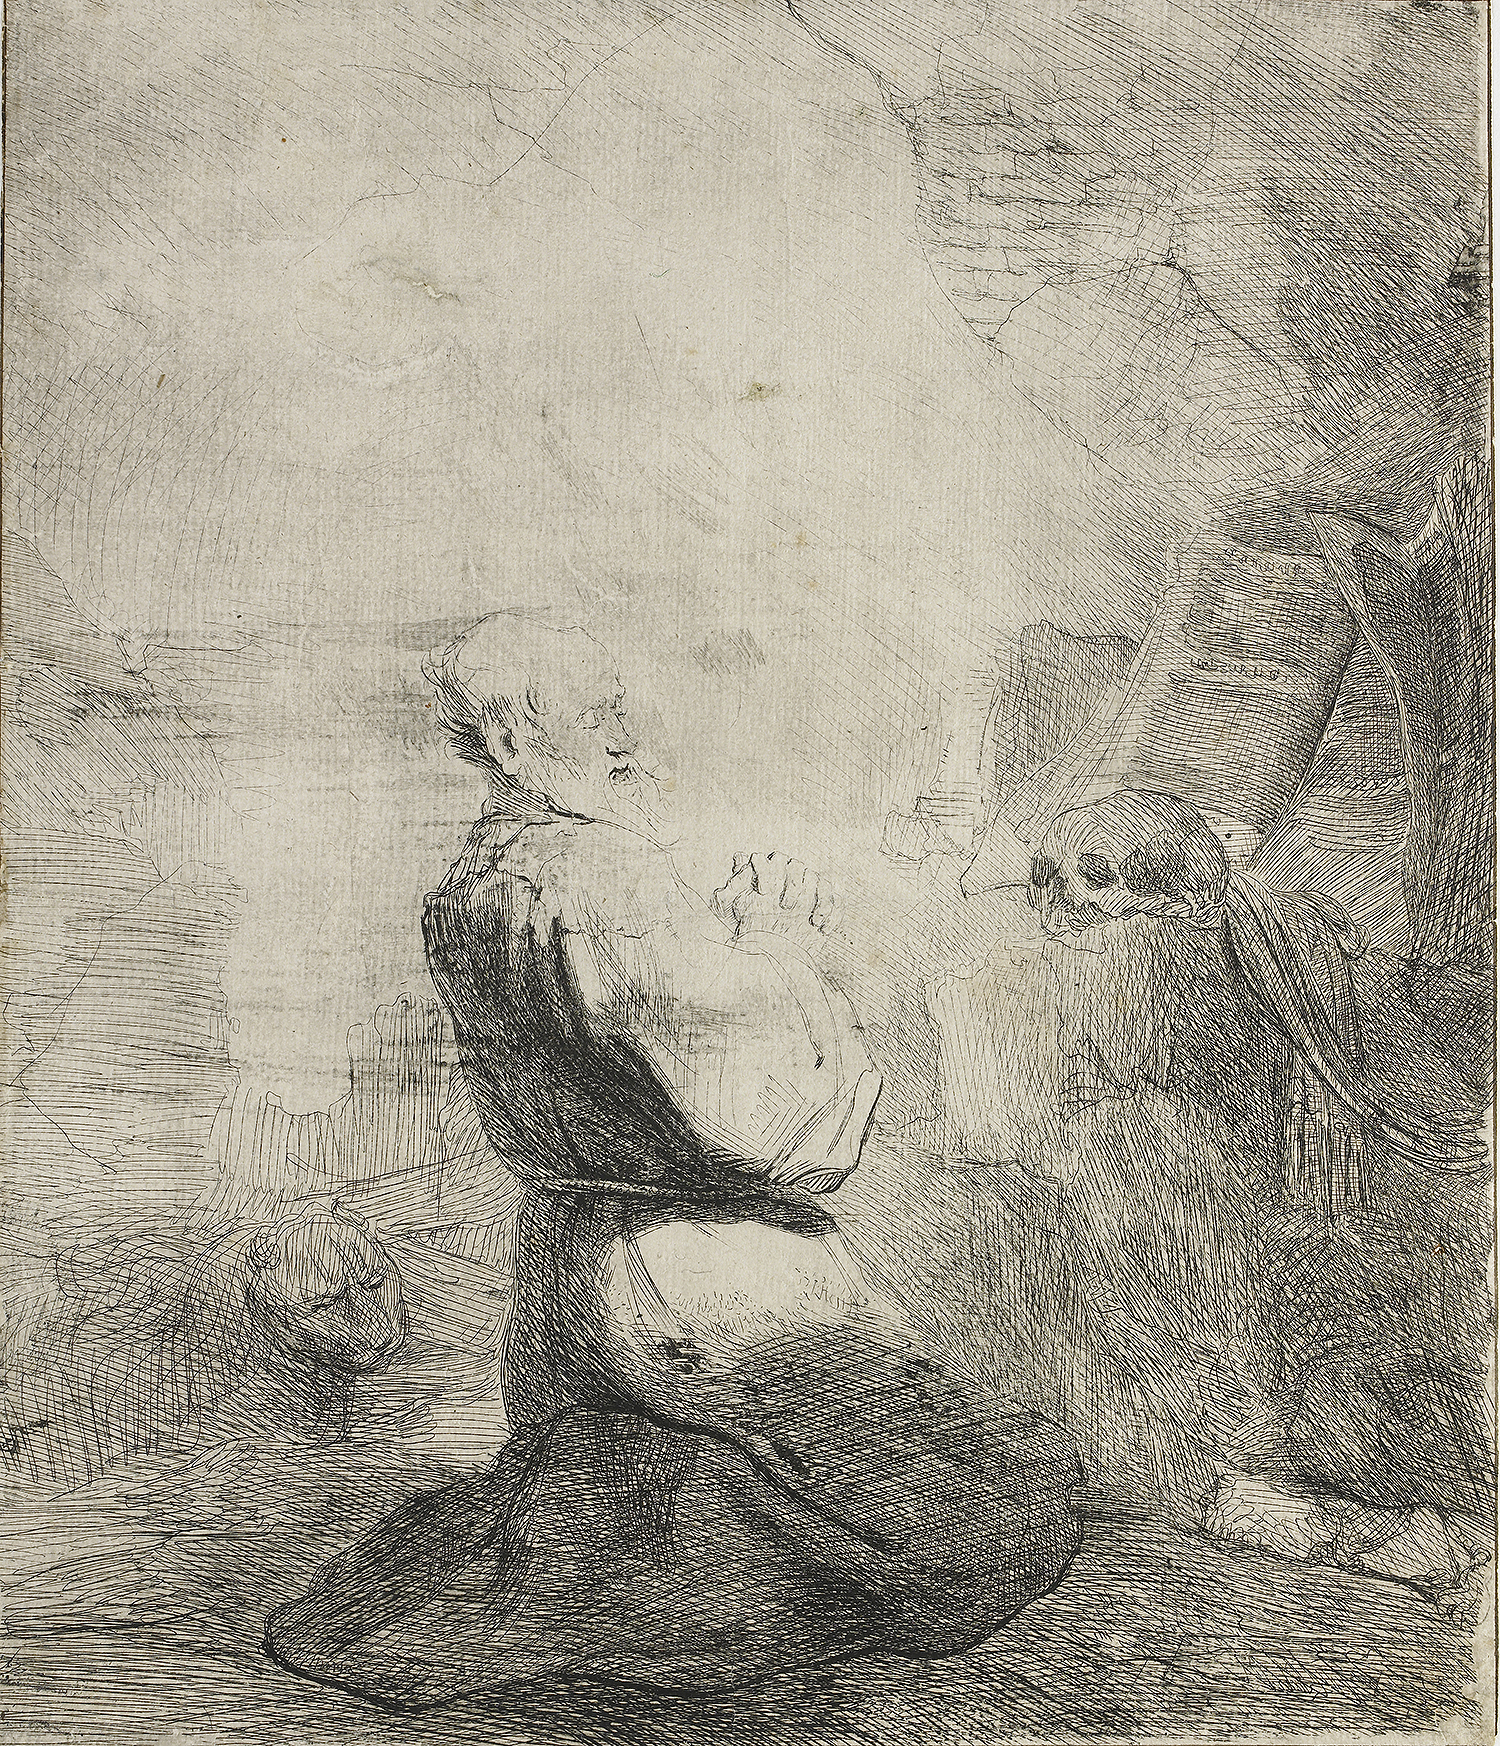 Rembrandt van Rijn (1606-1669), St. Jerome Kneeling: Large Plate, ca. 1628, Etching, retouched in pen and dark gray ink, only state. Rijksmuseum, Amsterdam.